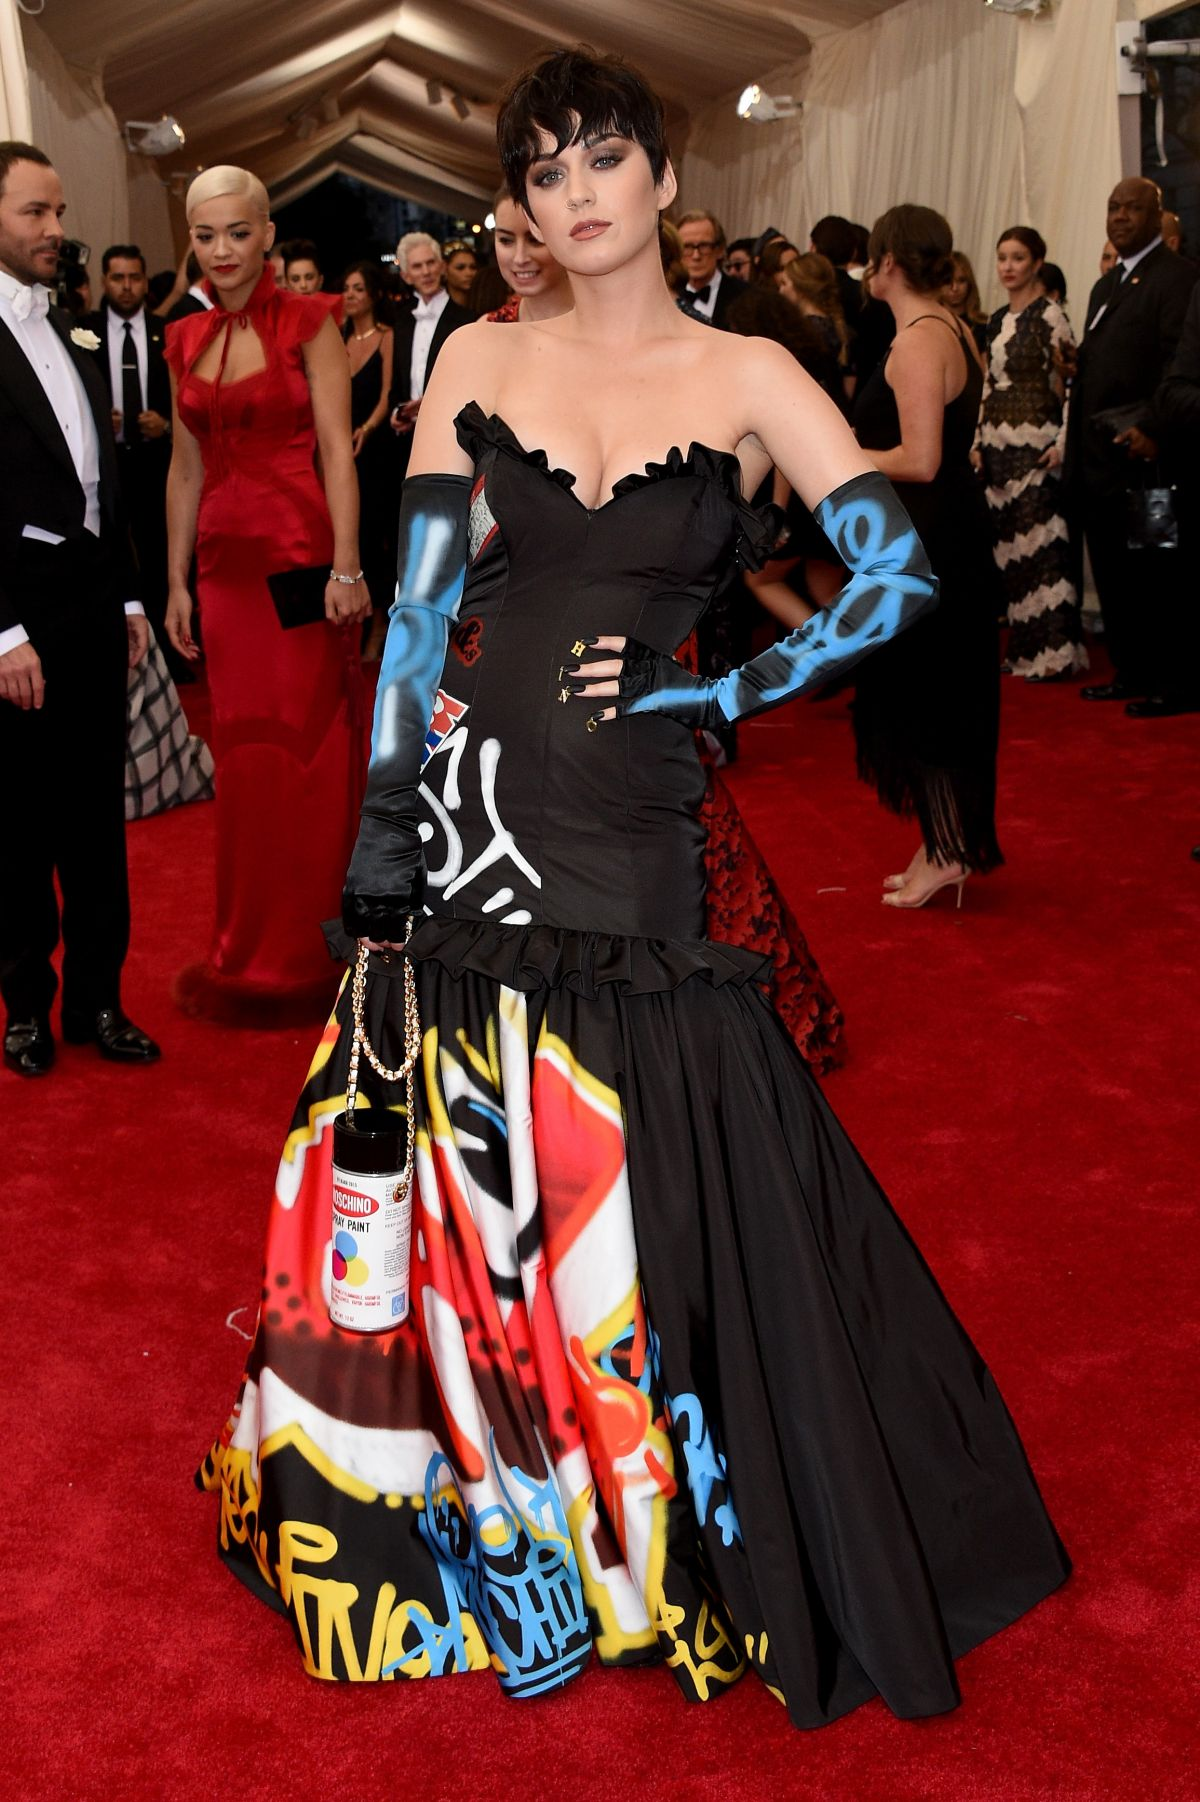 KATY PERRY at MET Gala 2015 in New York